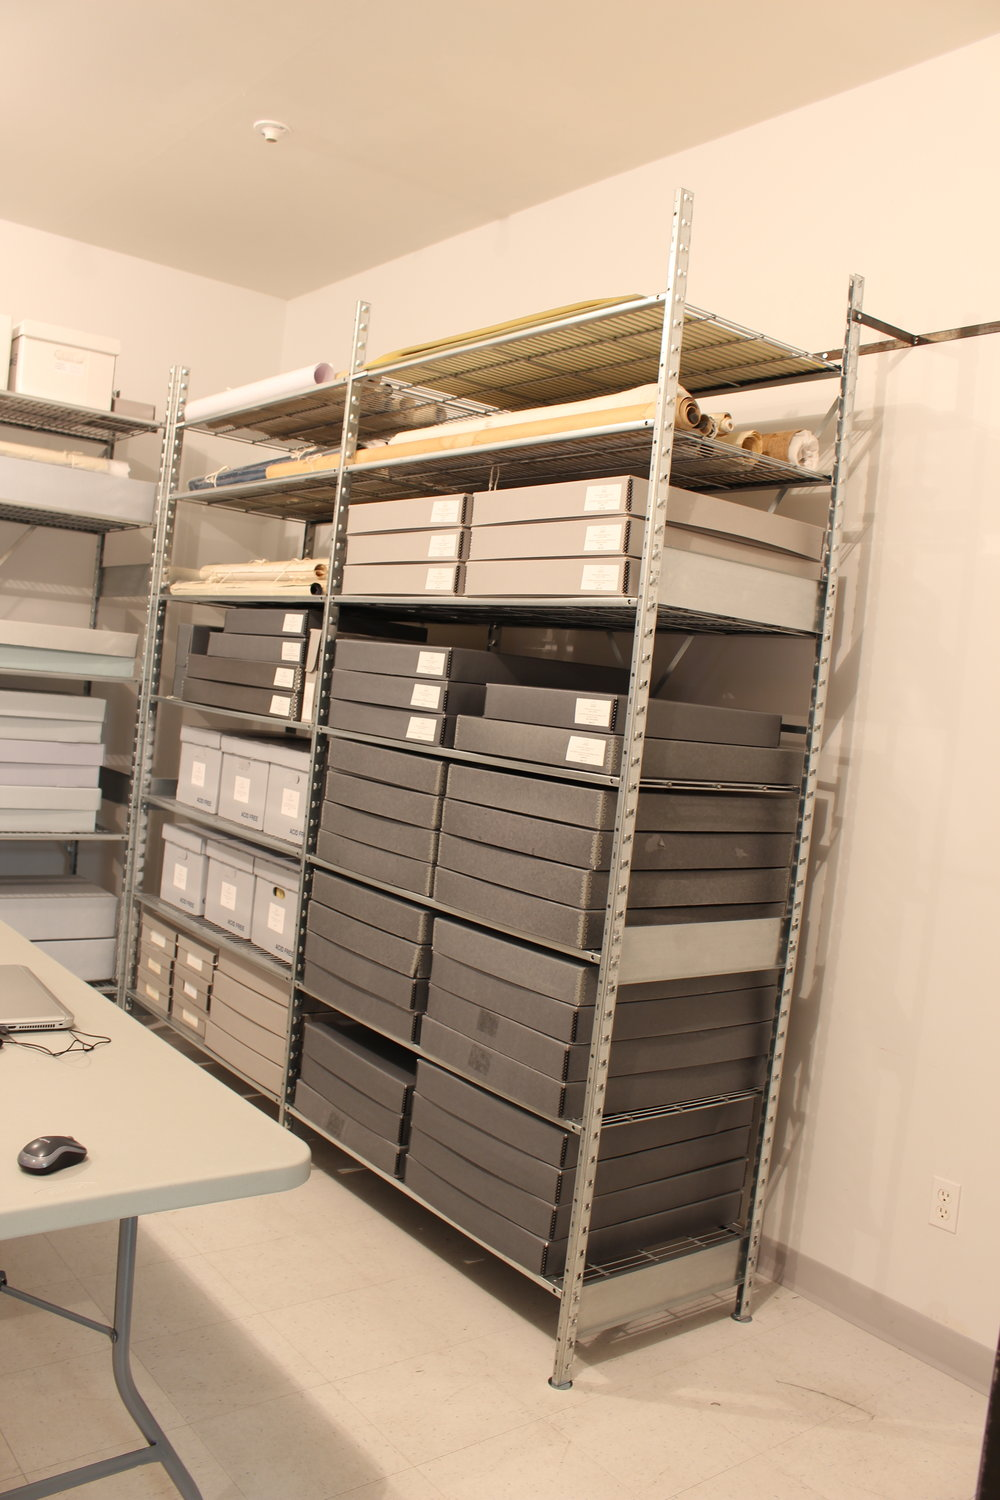 These extra-wide shelves now hold all of the wide collection items - newspapers, scrapbooks, rolled maps, and oversized documents. Nothing overhanging anymore!